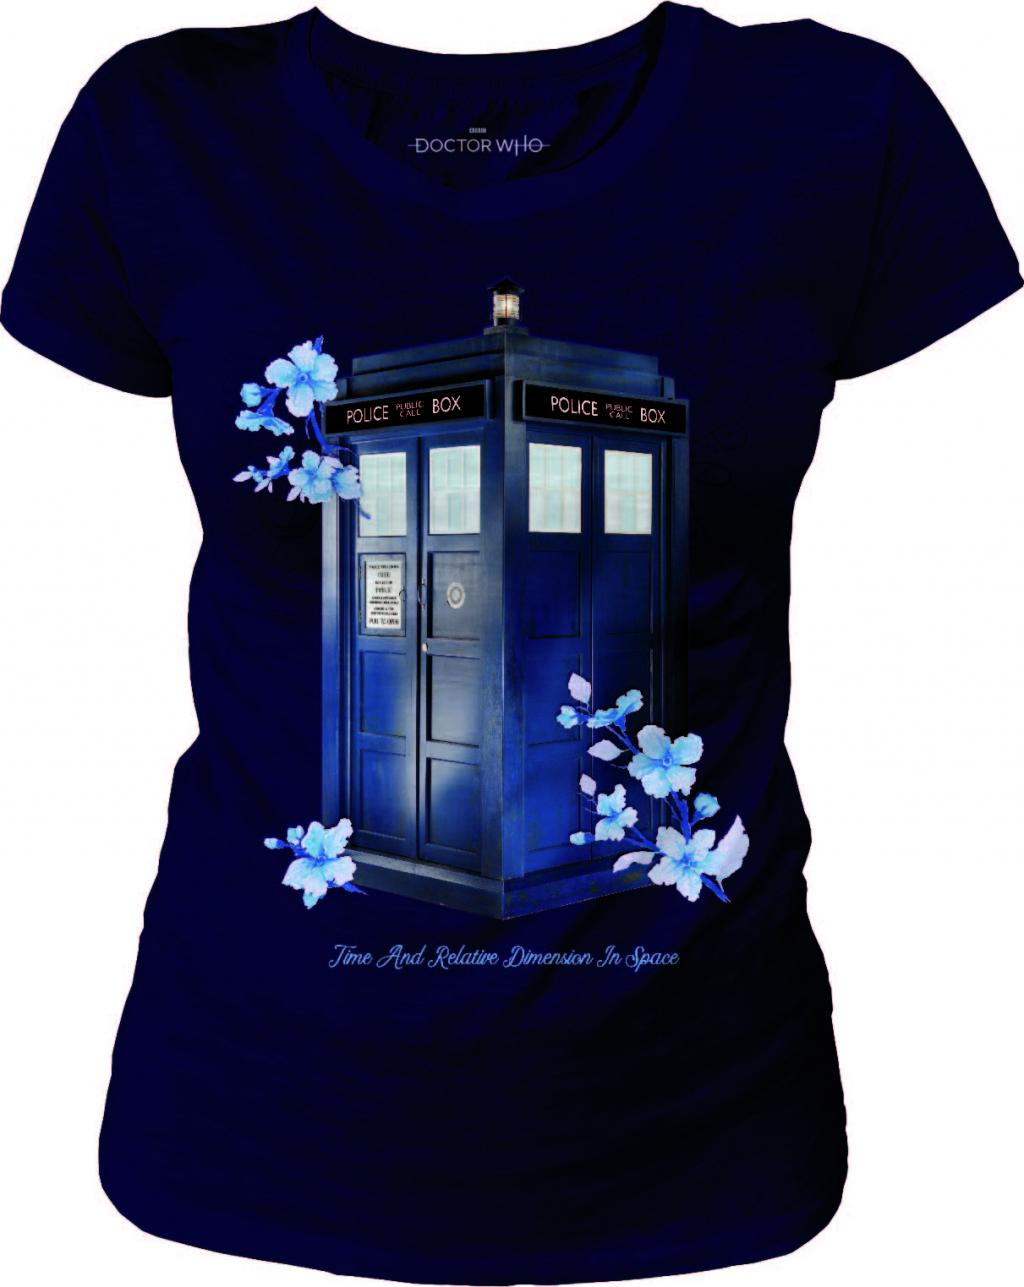 DOCTOR WHO - T-Shirt Flower Tardis - GIRL (S)